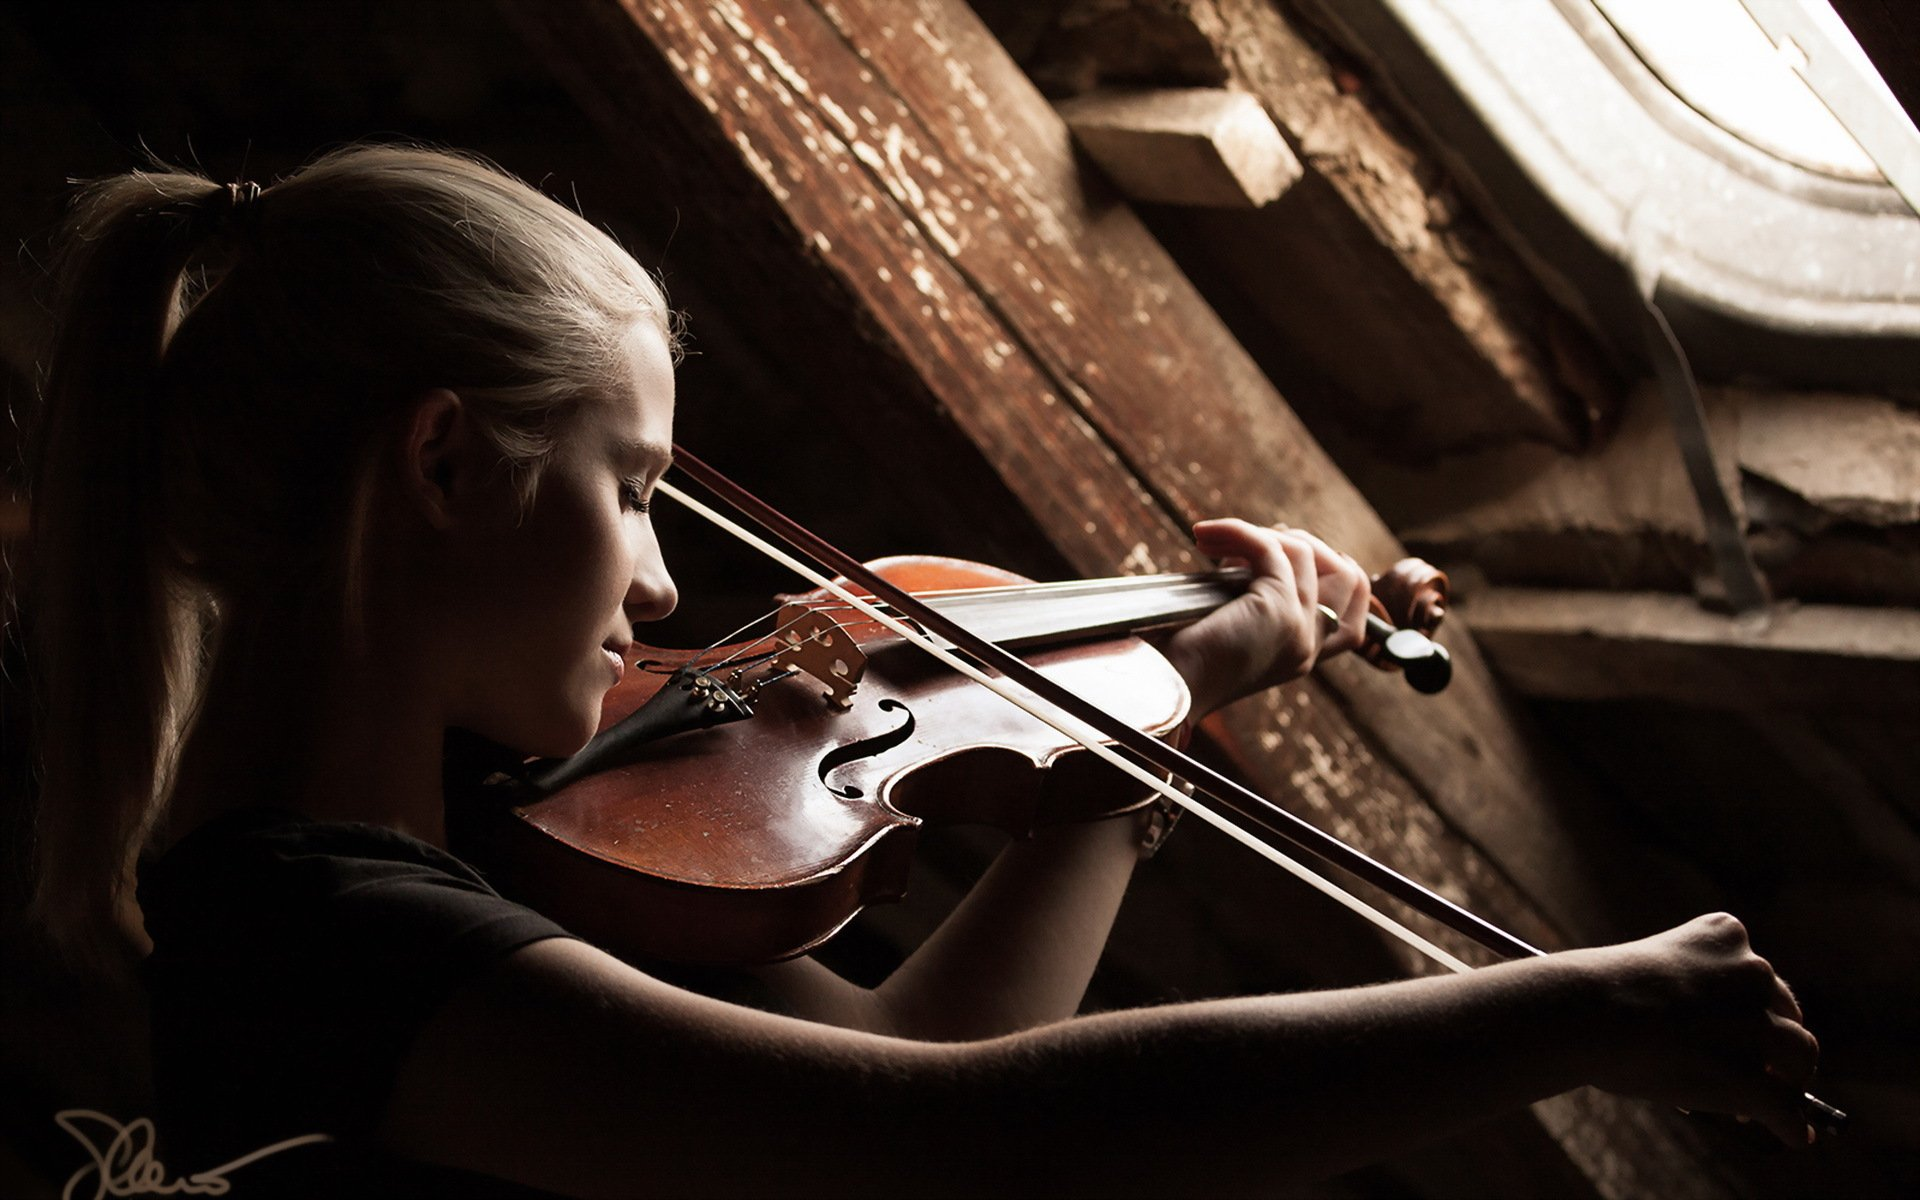 Im a 24 year old adult beginner from Norway and I wanted to see if it was possible to learn to play the violin as an adult This is the first instrument